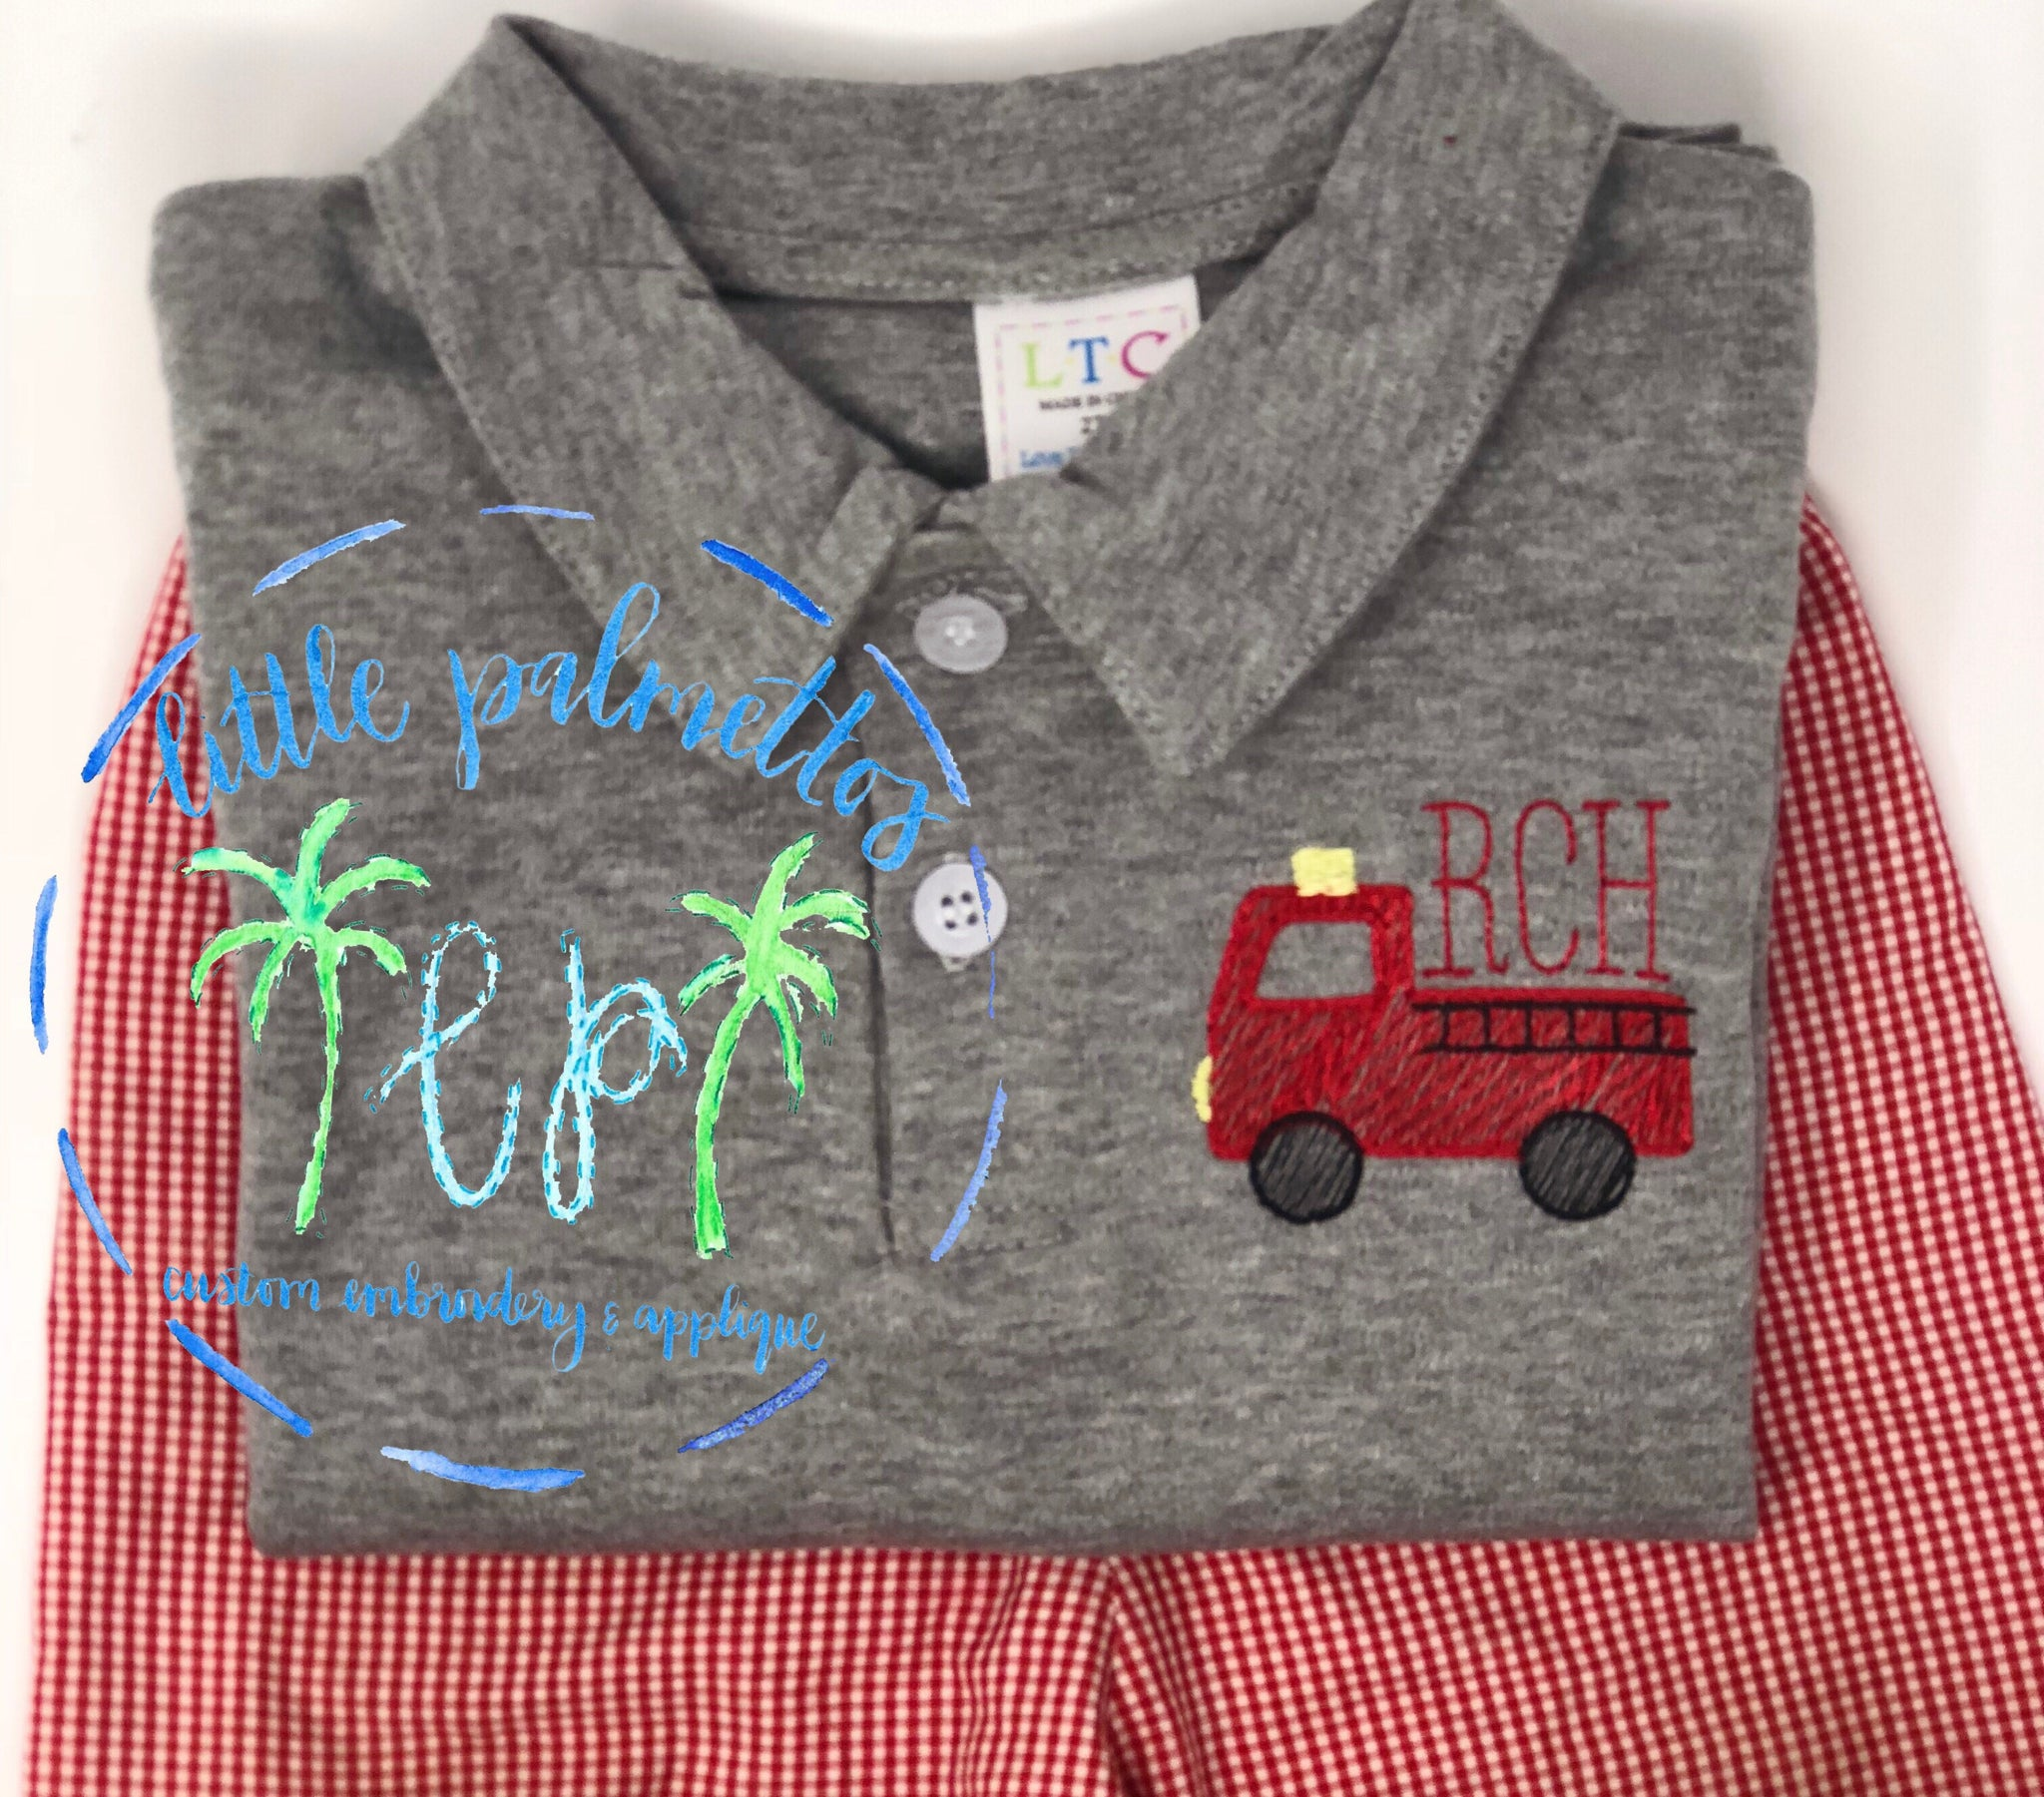 Firetruck Collared Shirt (white shirt unless otherwise stated)